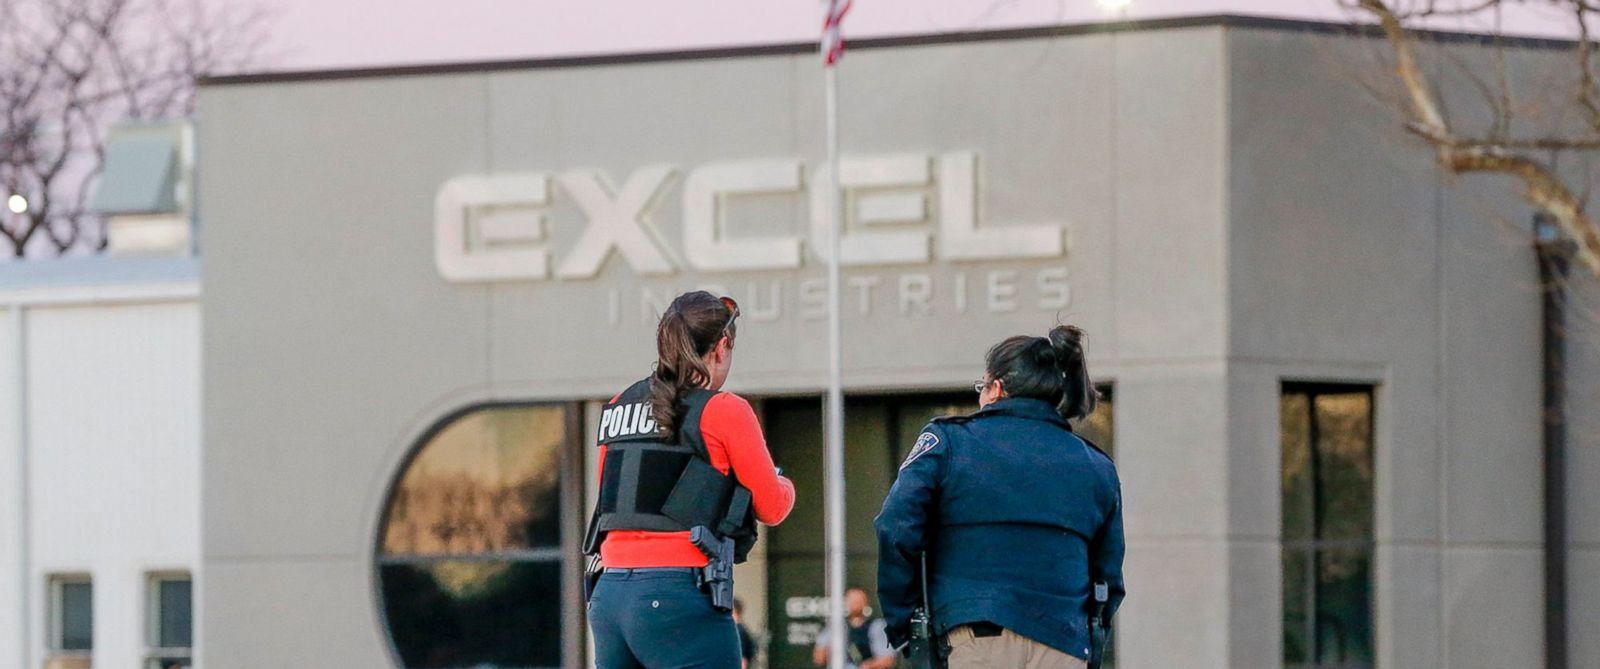 PHOTO: Police guard the front door of Excel Industries in Hesston, Kan., where a gunman reportedly killed up to seven people and injured many others on Feb. 25, 2016.